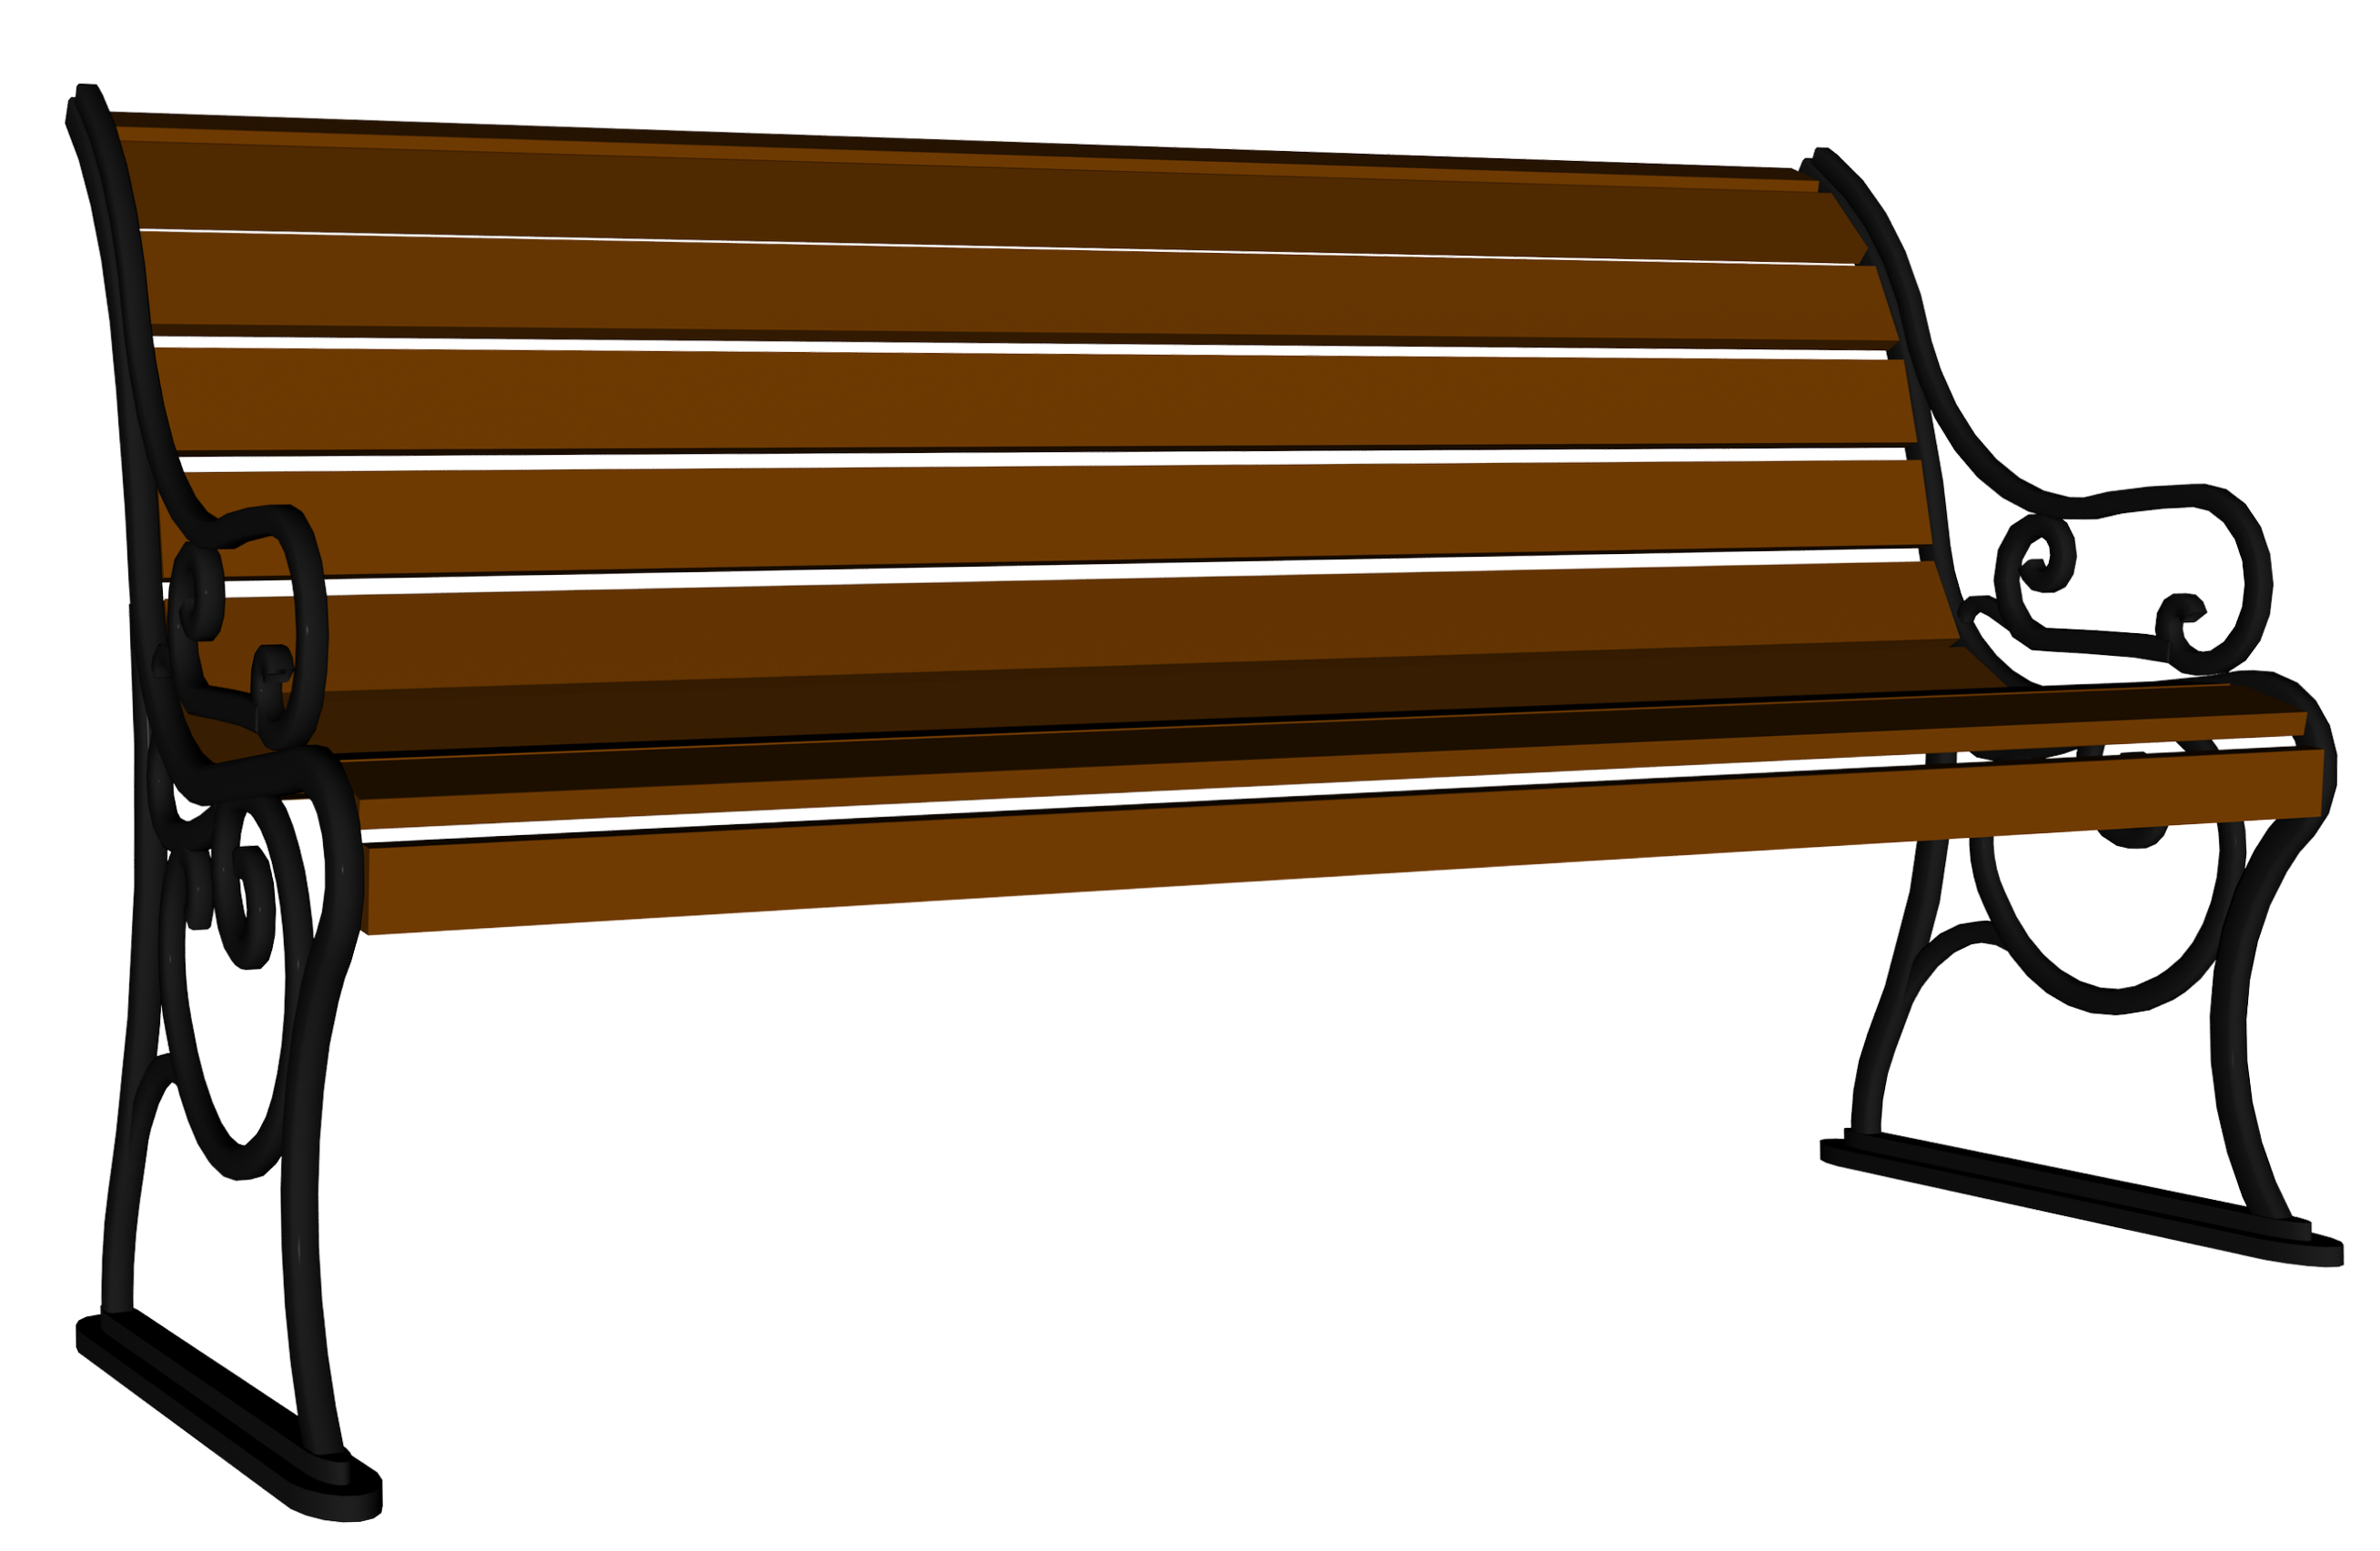 Wooden bench clipart clipart freeuse library Wooden Bench PNG Image | Gallery Yopriceville - High ... clipart freeuse library